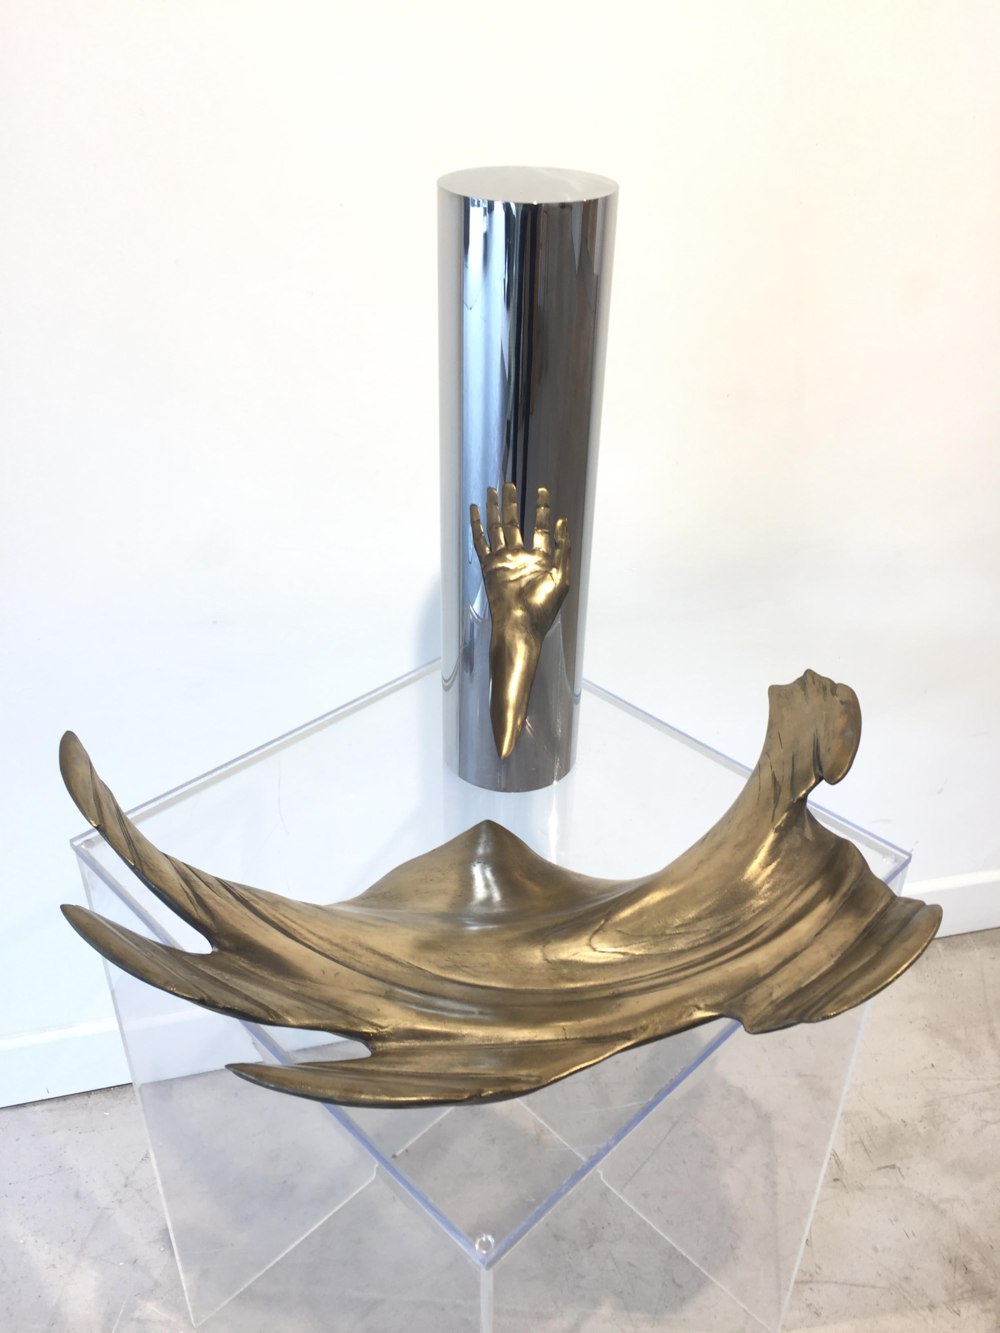 Jonty HURWITZ     |    The hand that caught me falling     | 50 x 50 x 50 cm | Bronze, wood & chrome